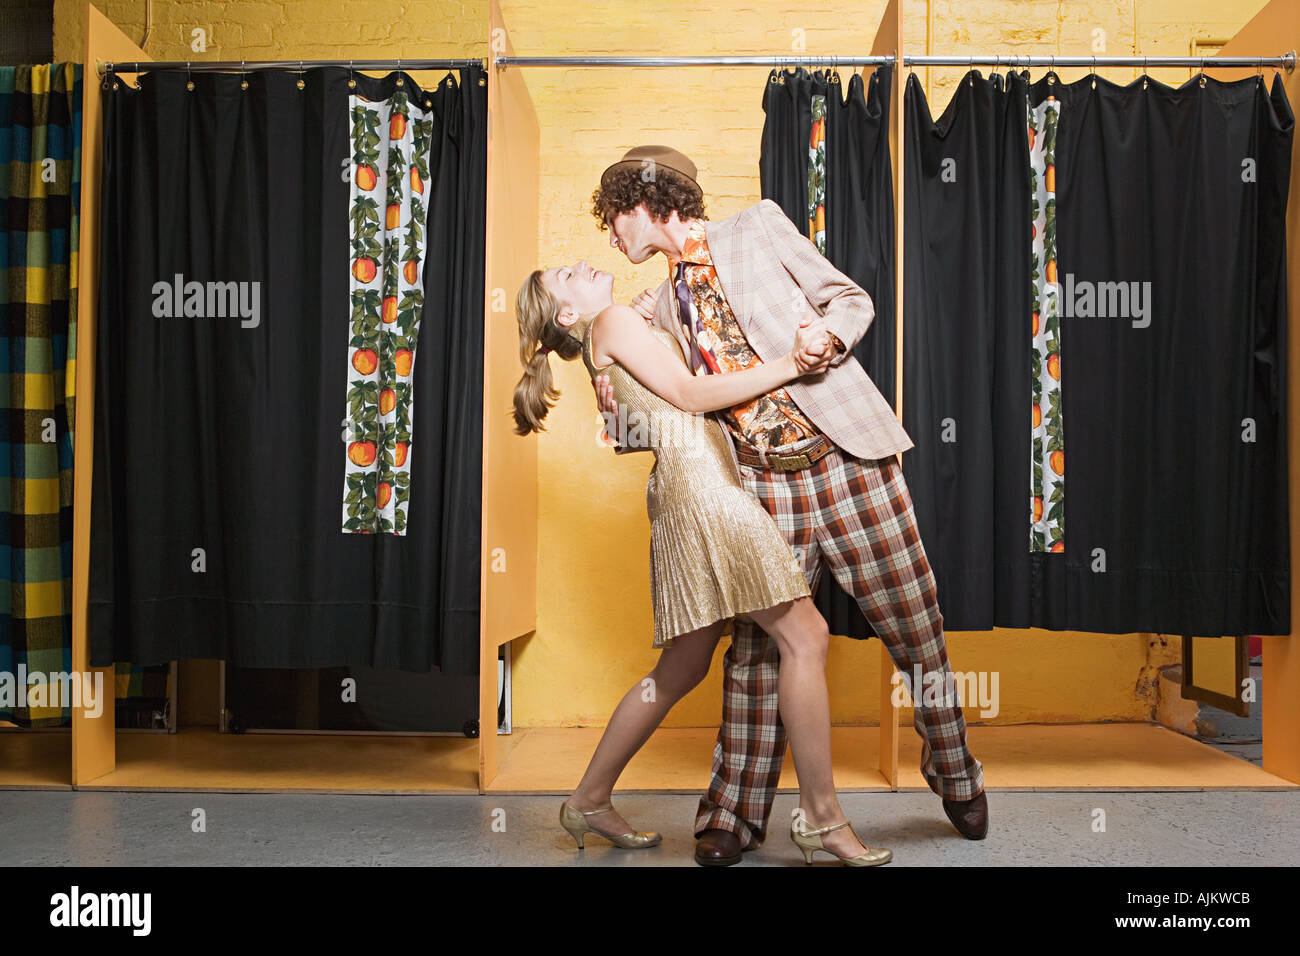 Retro couple dancing in clothes store - Stock Image